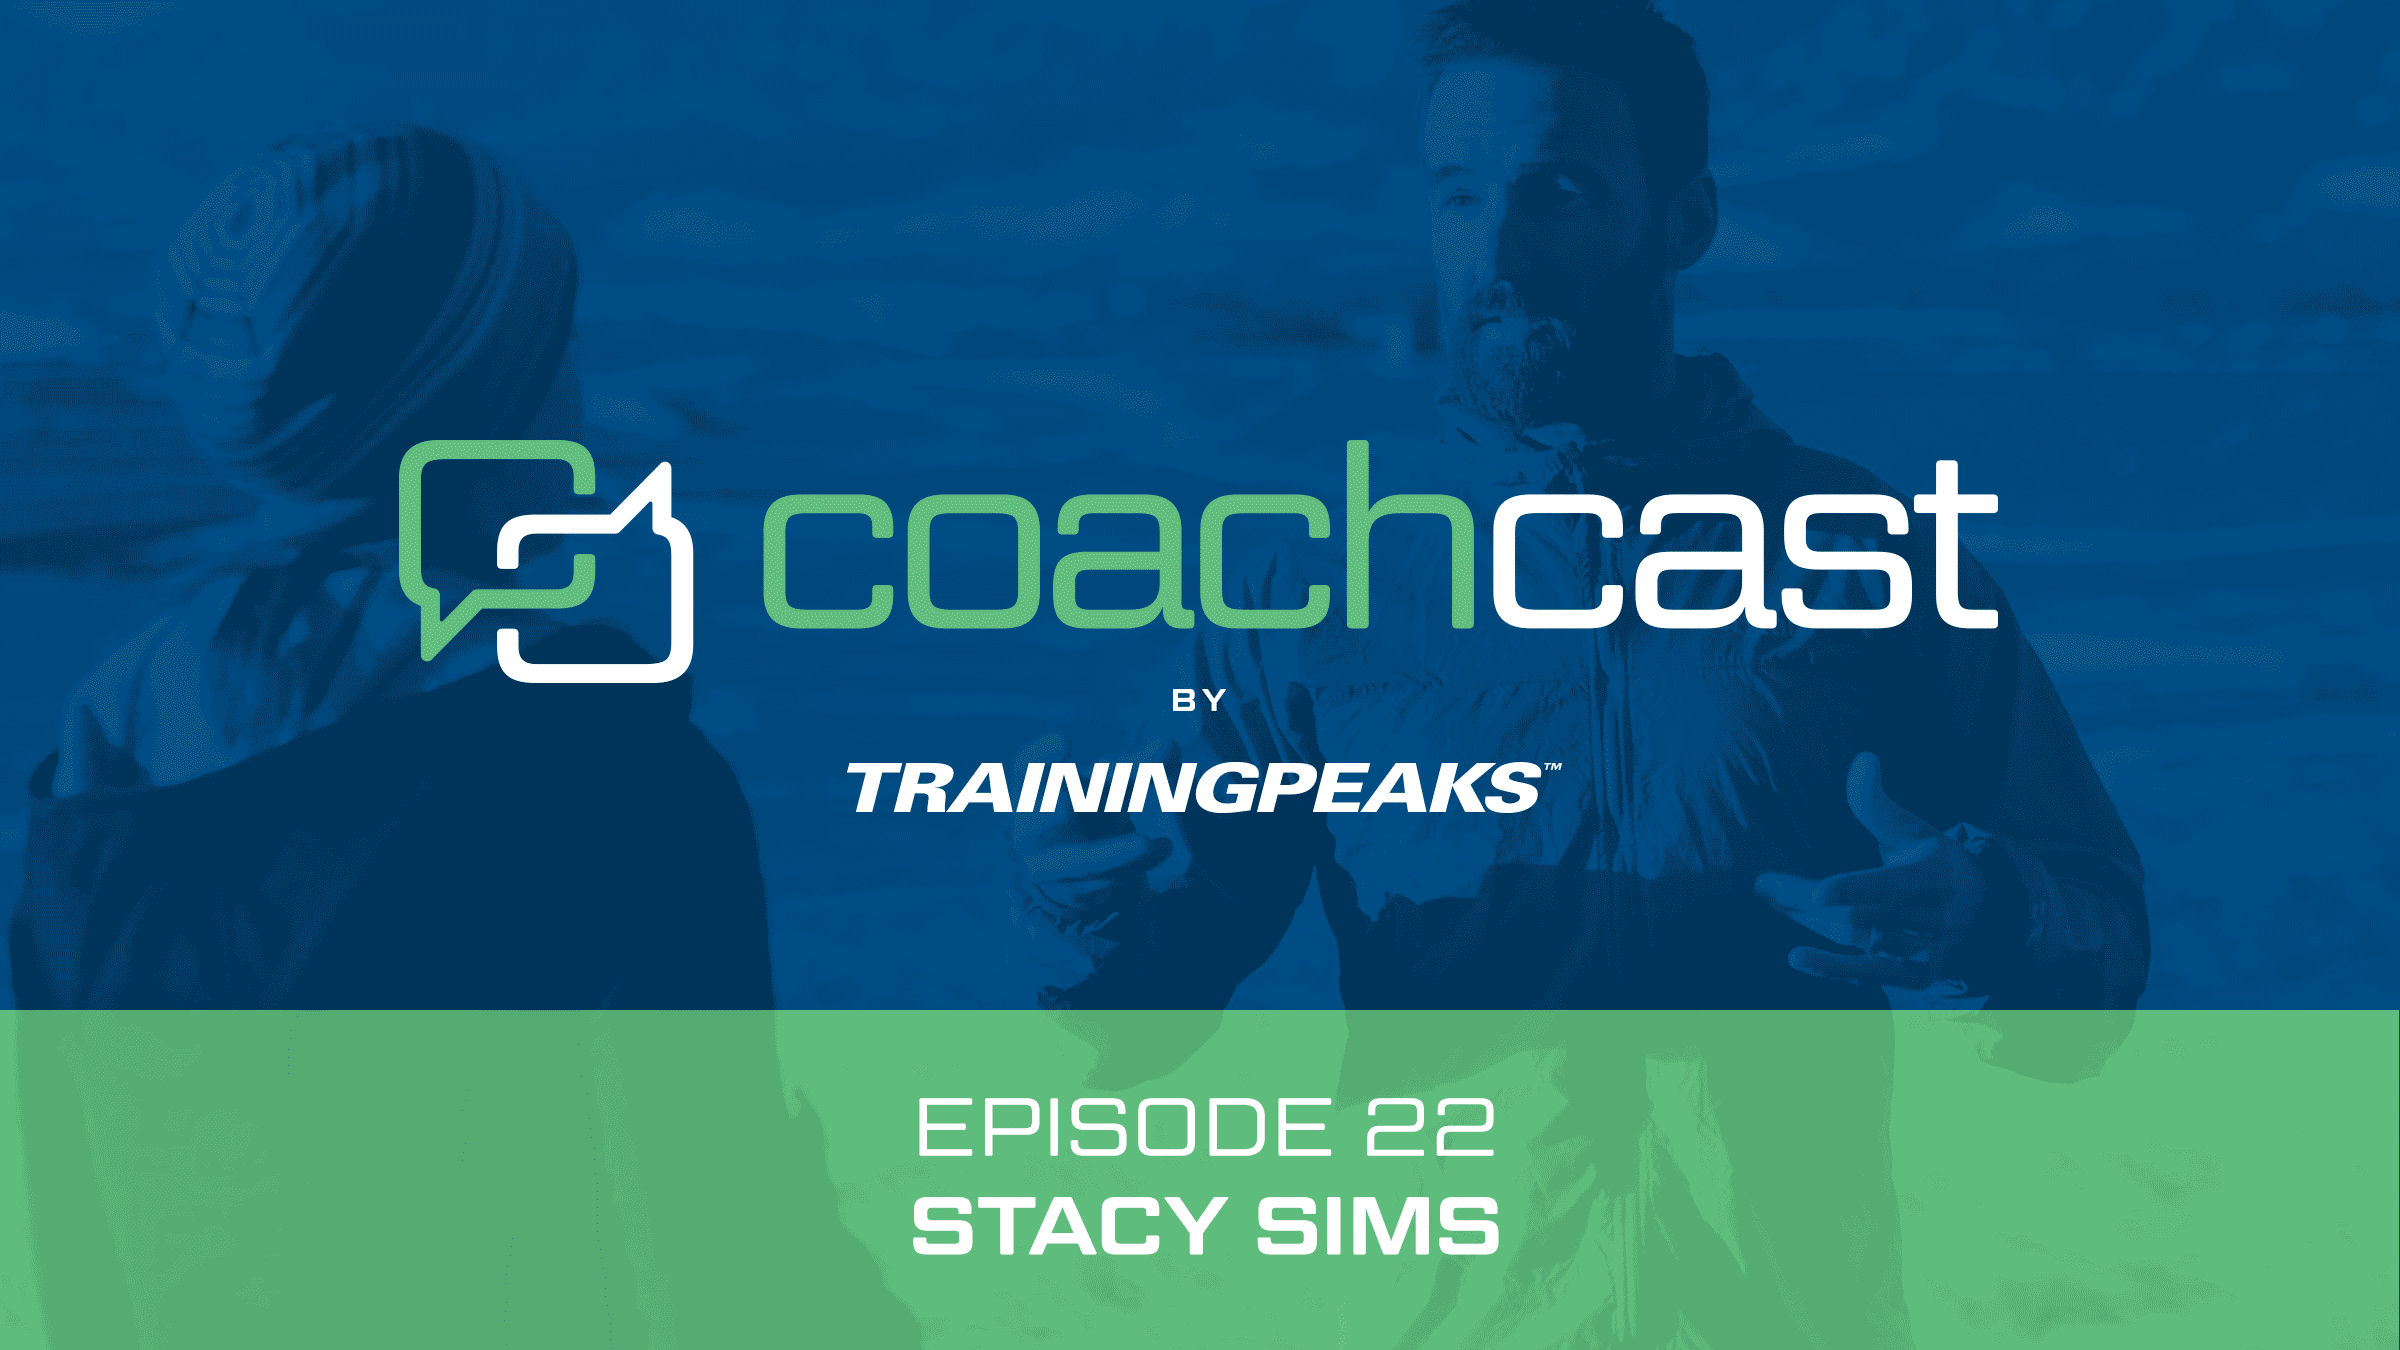 CoachCast: Optimizing Physiology with Stacy Sims